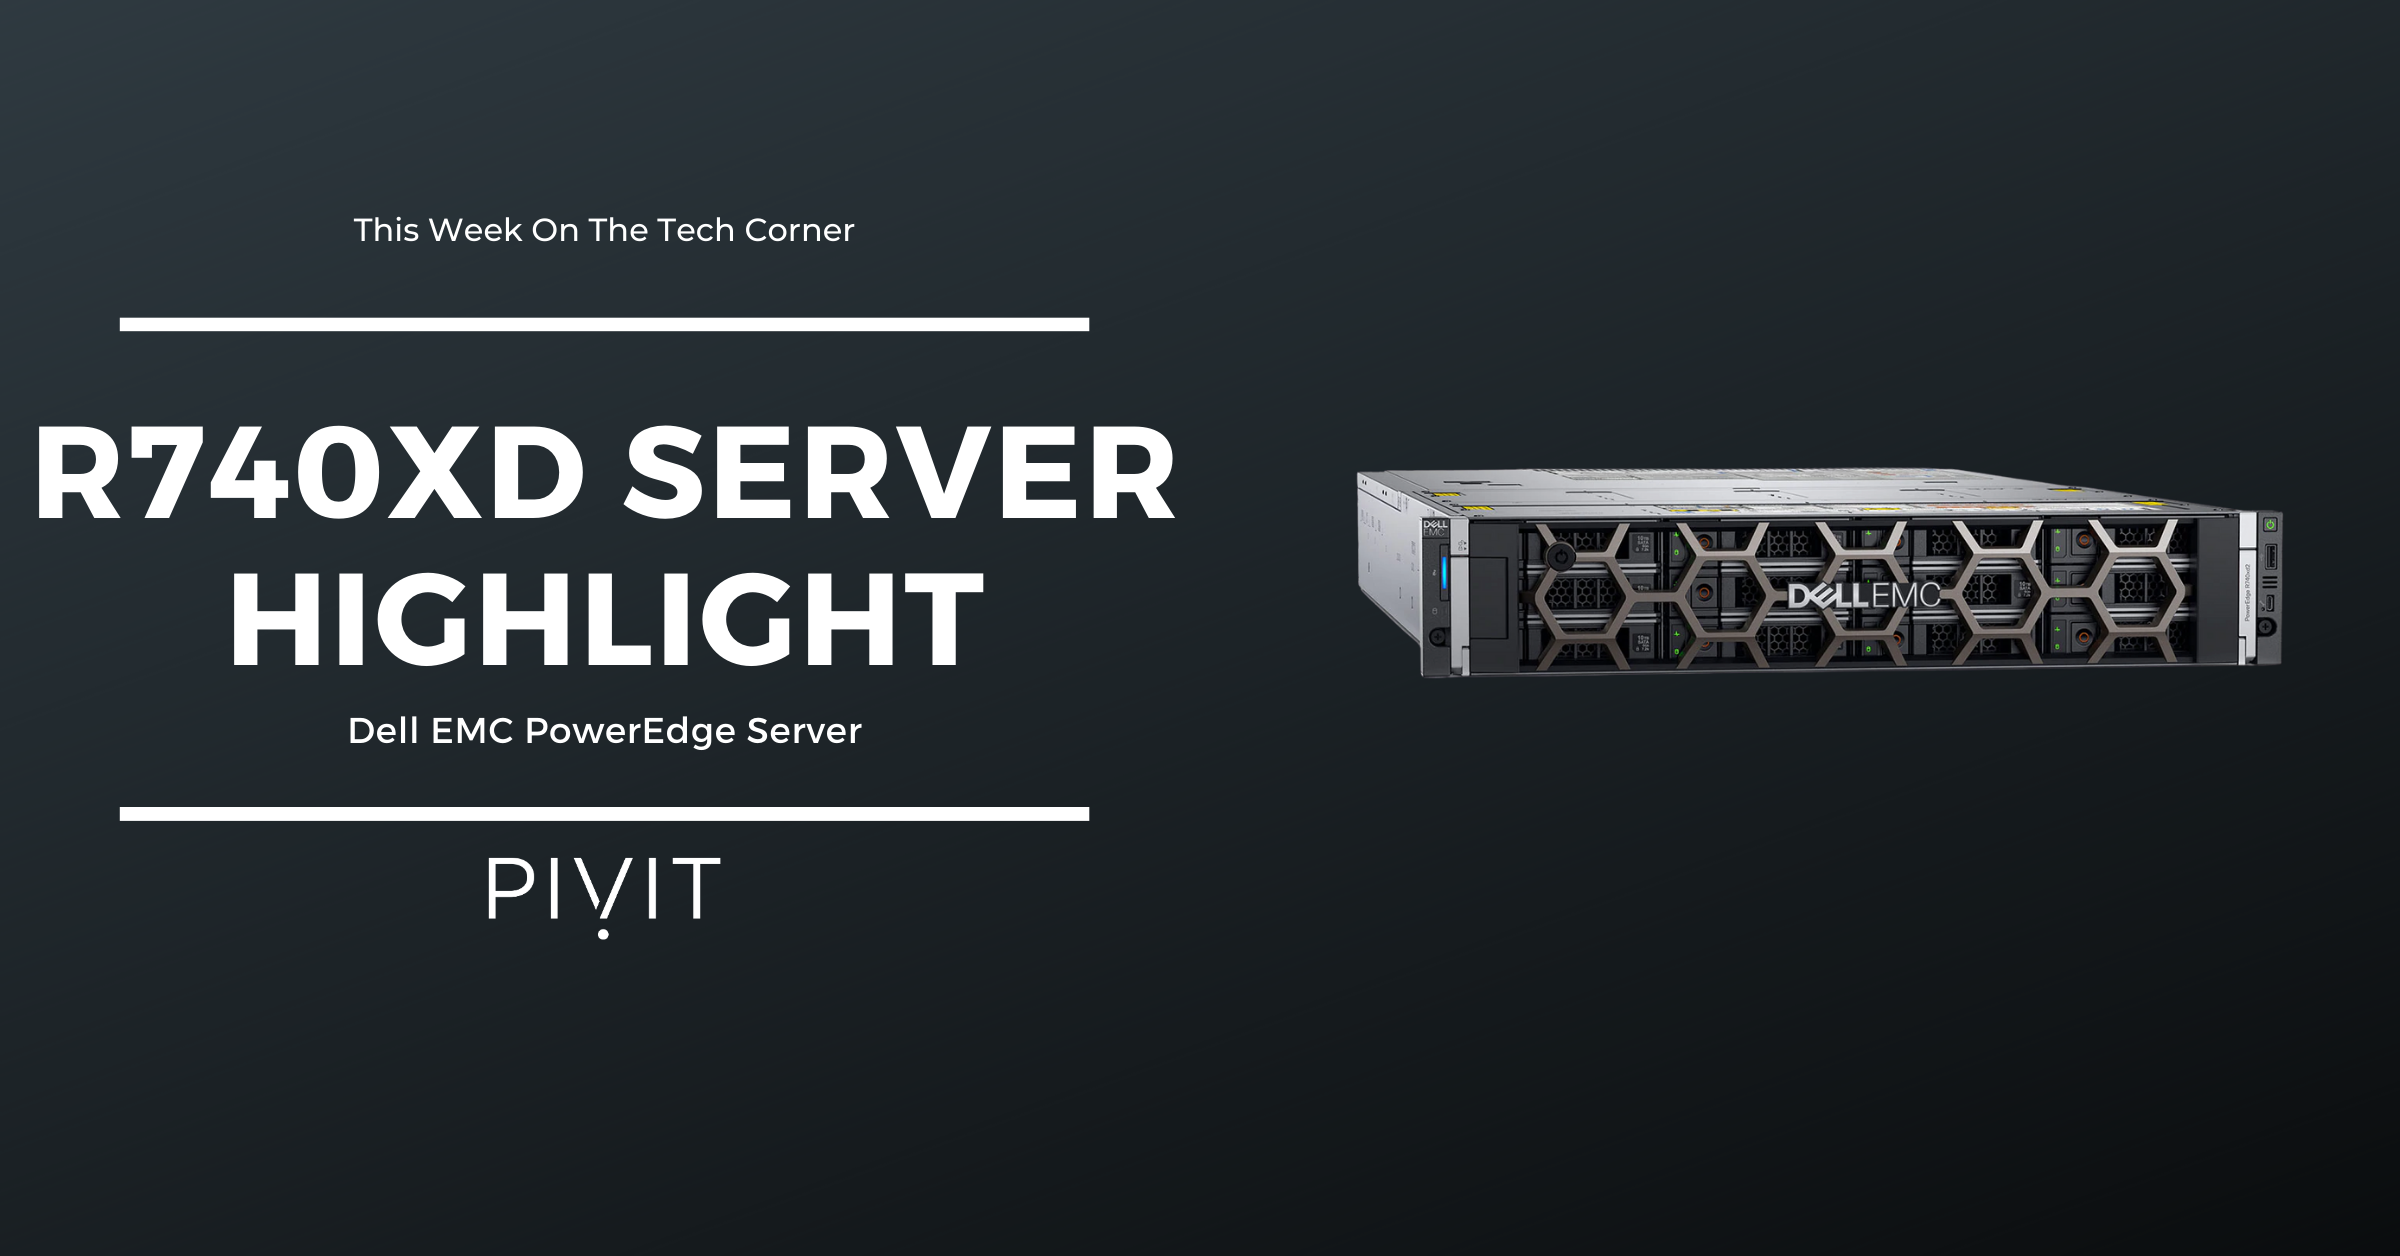 Simplify Your Network with Dell EMC's PowerEdge R740xd Server